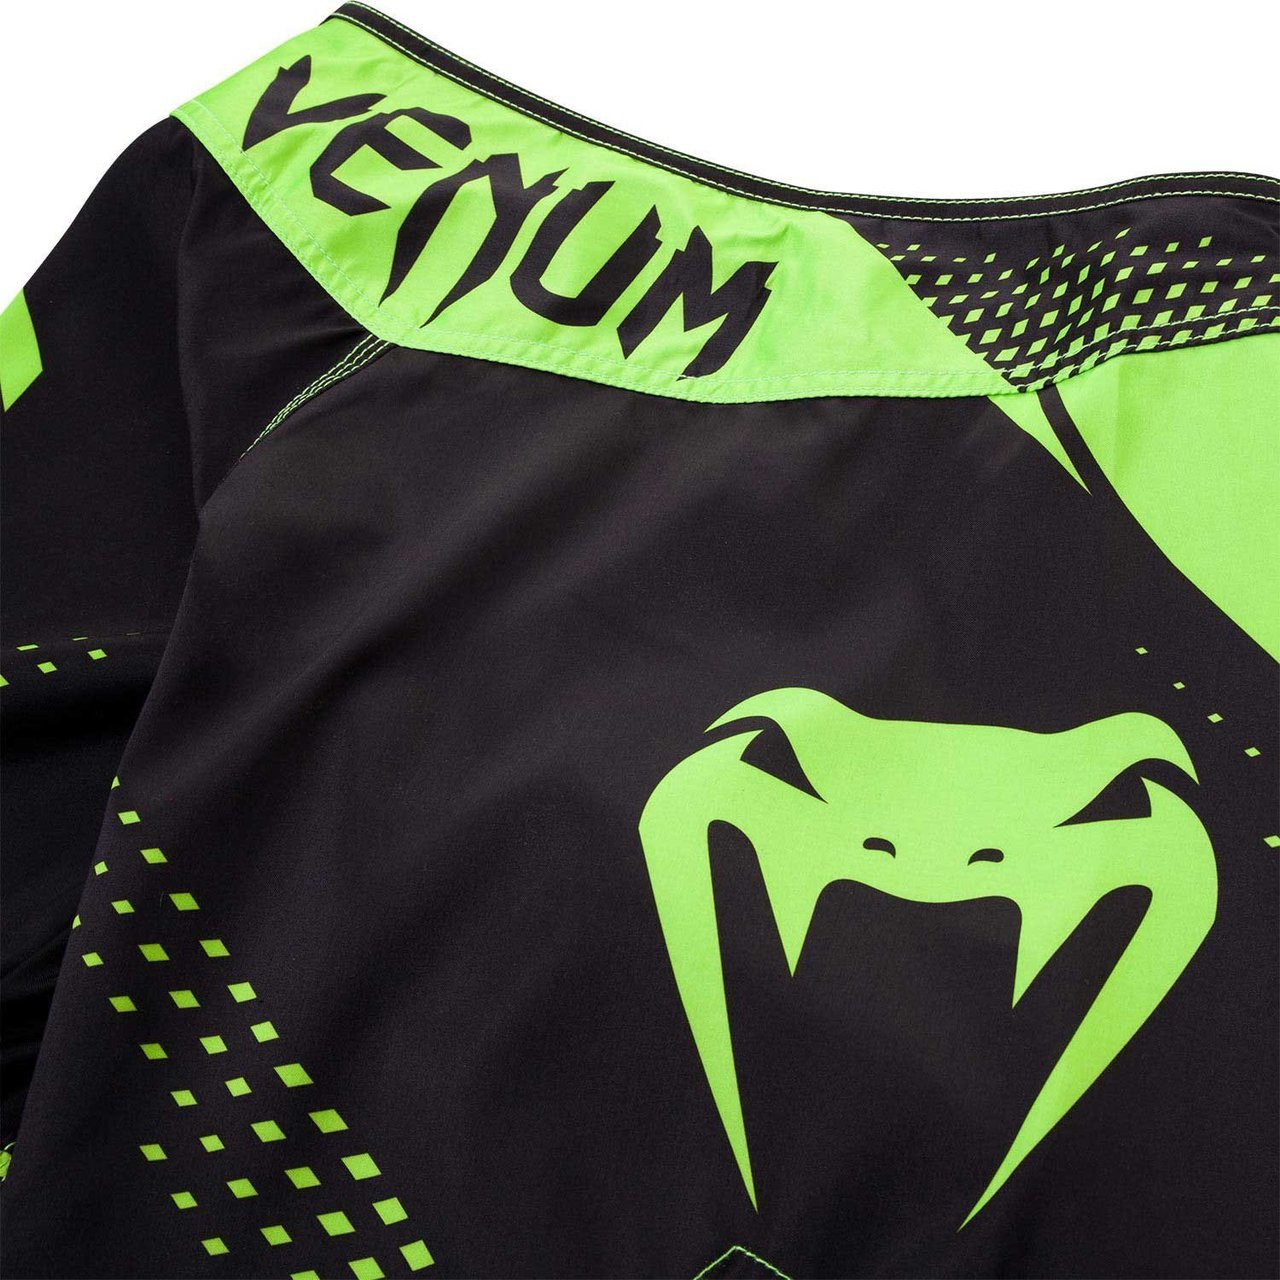 back zoom into the Venum Hurricane Fight Shorts now available at www.thejiujitsushop.com Bring black and green shorts to take on the world.   Enjoy Free Shipping from The Jiu Jitsu Shop today!